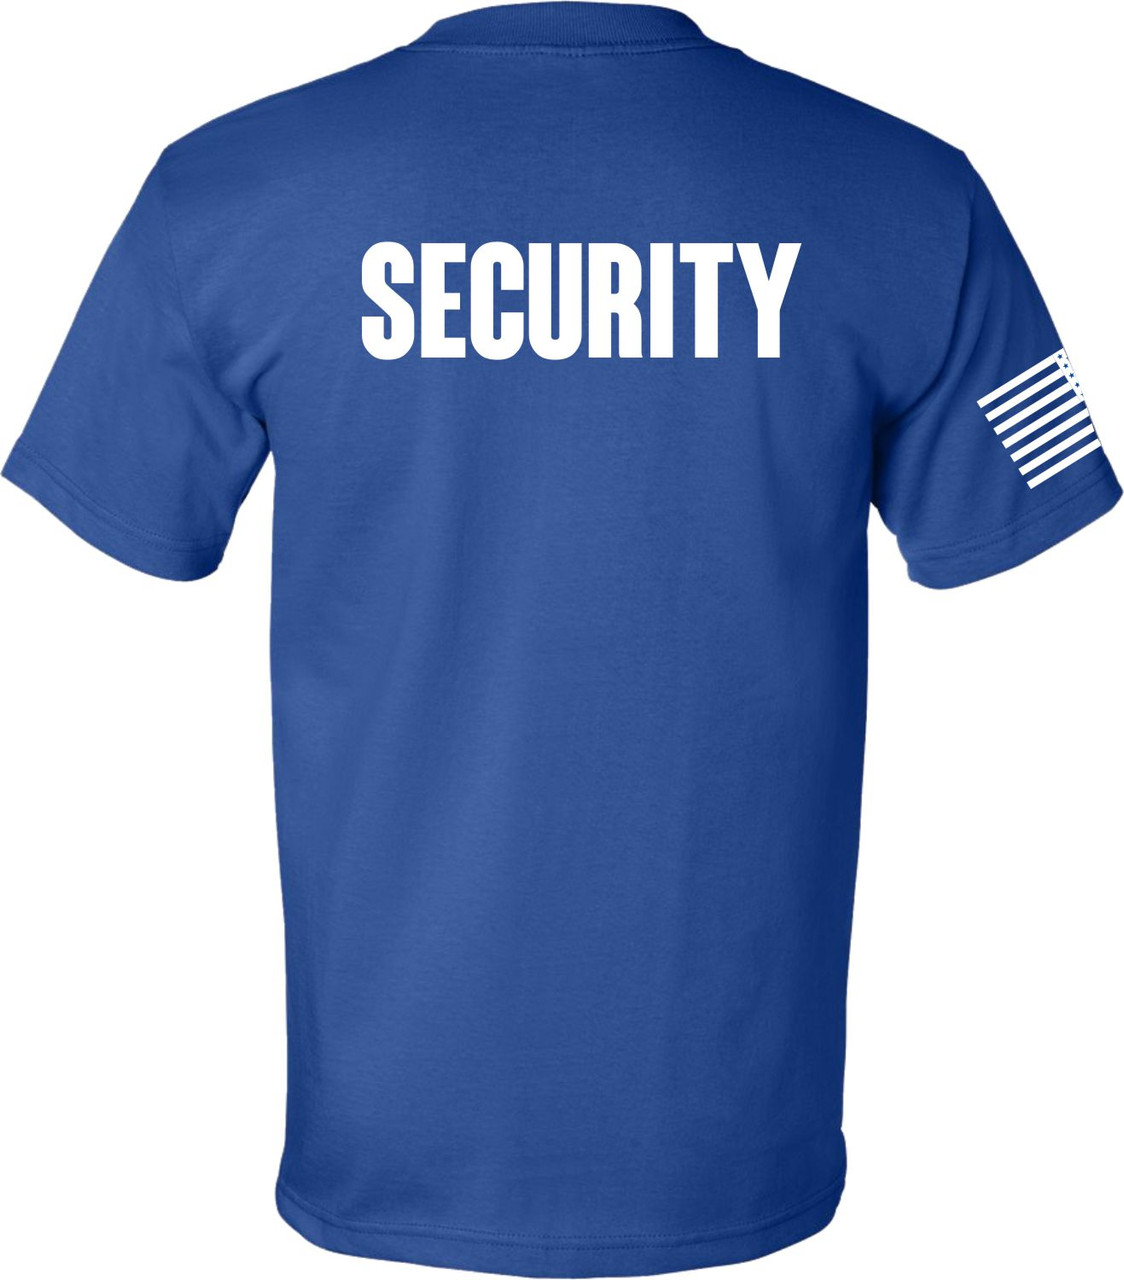 Security Shirt Made in the USA.  Proud American Flag Printed on the Right Sleeve.